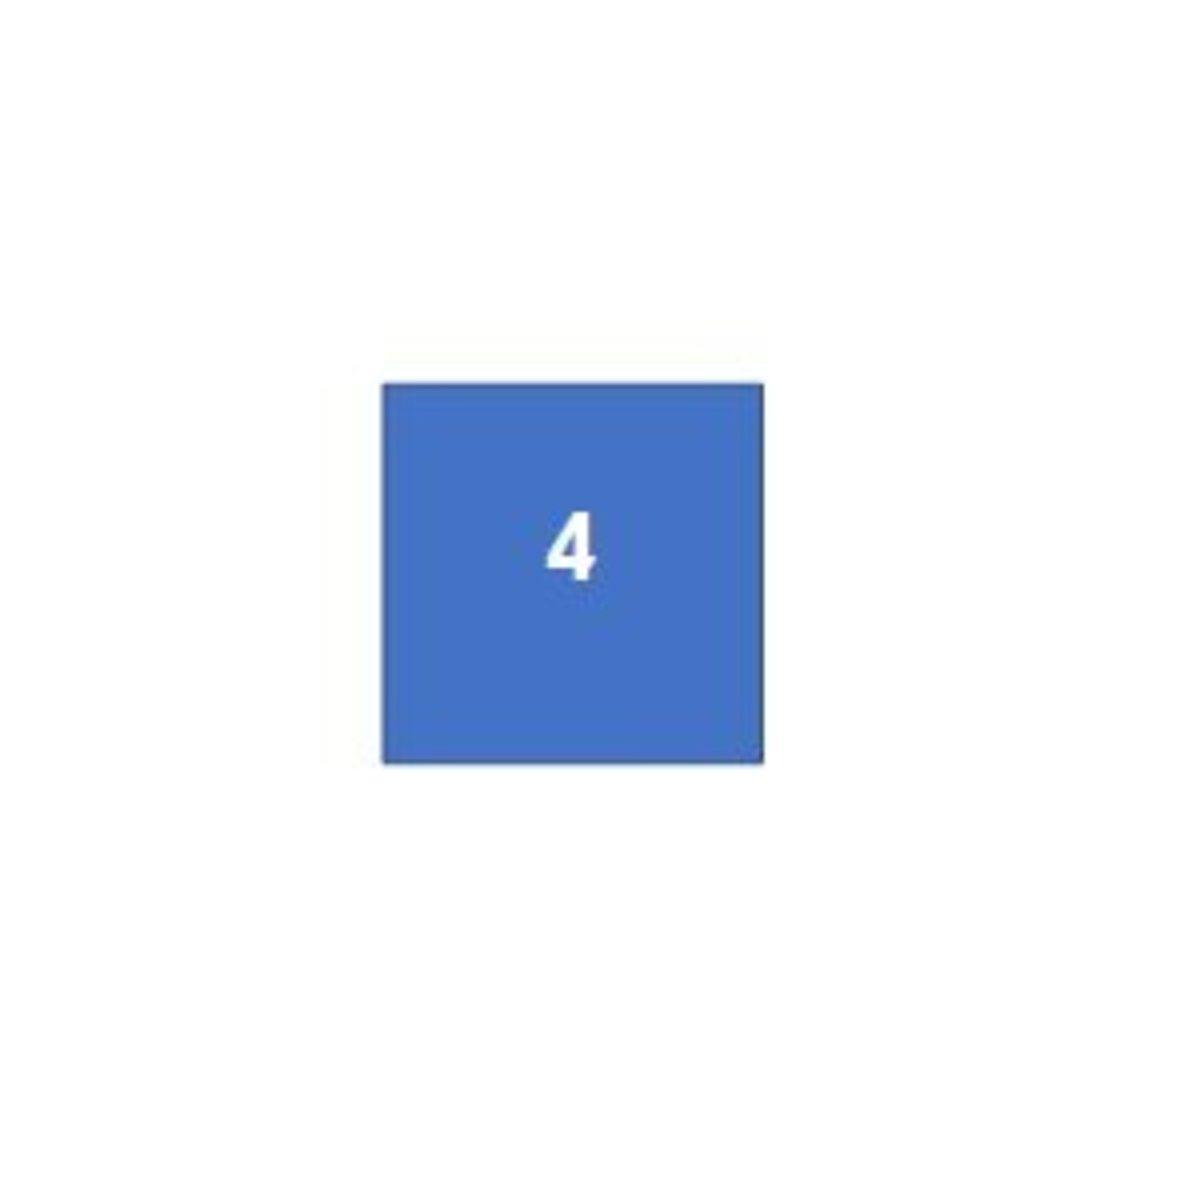 A square, which is a quadrilateral, has 4 sides.